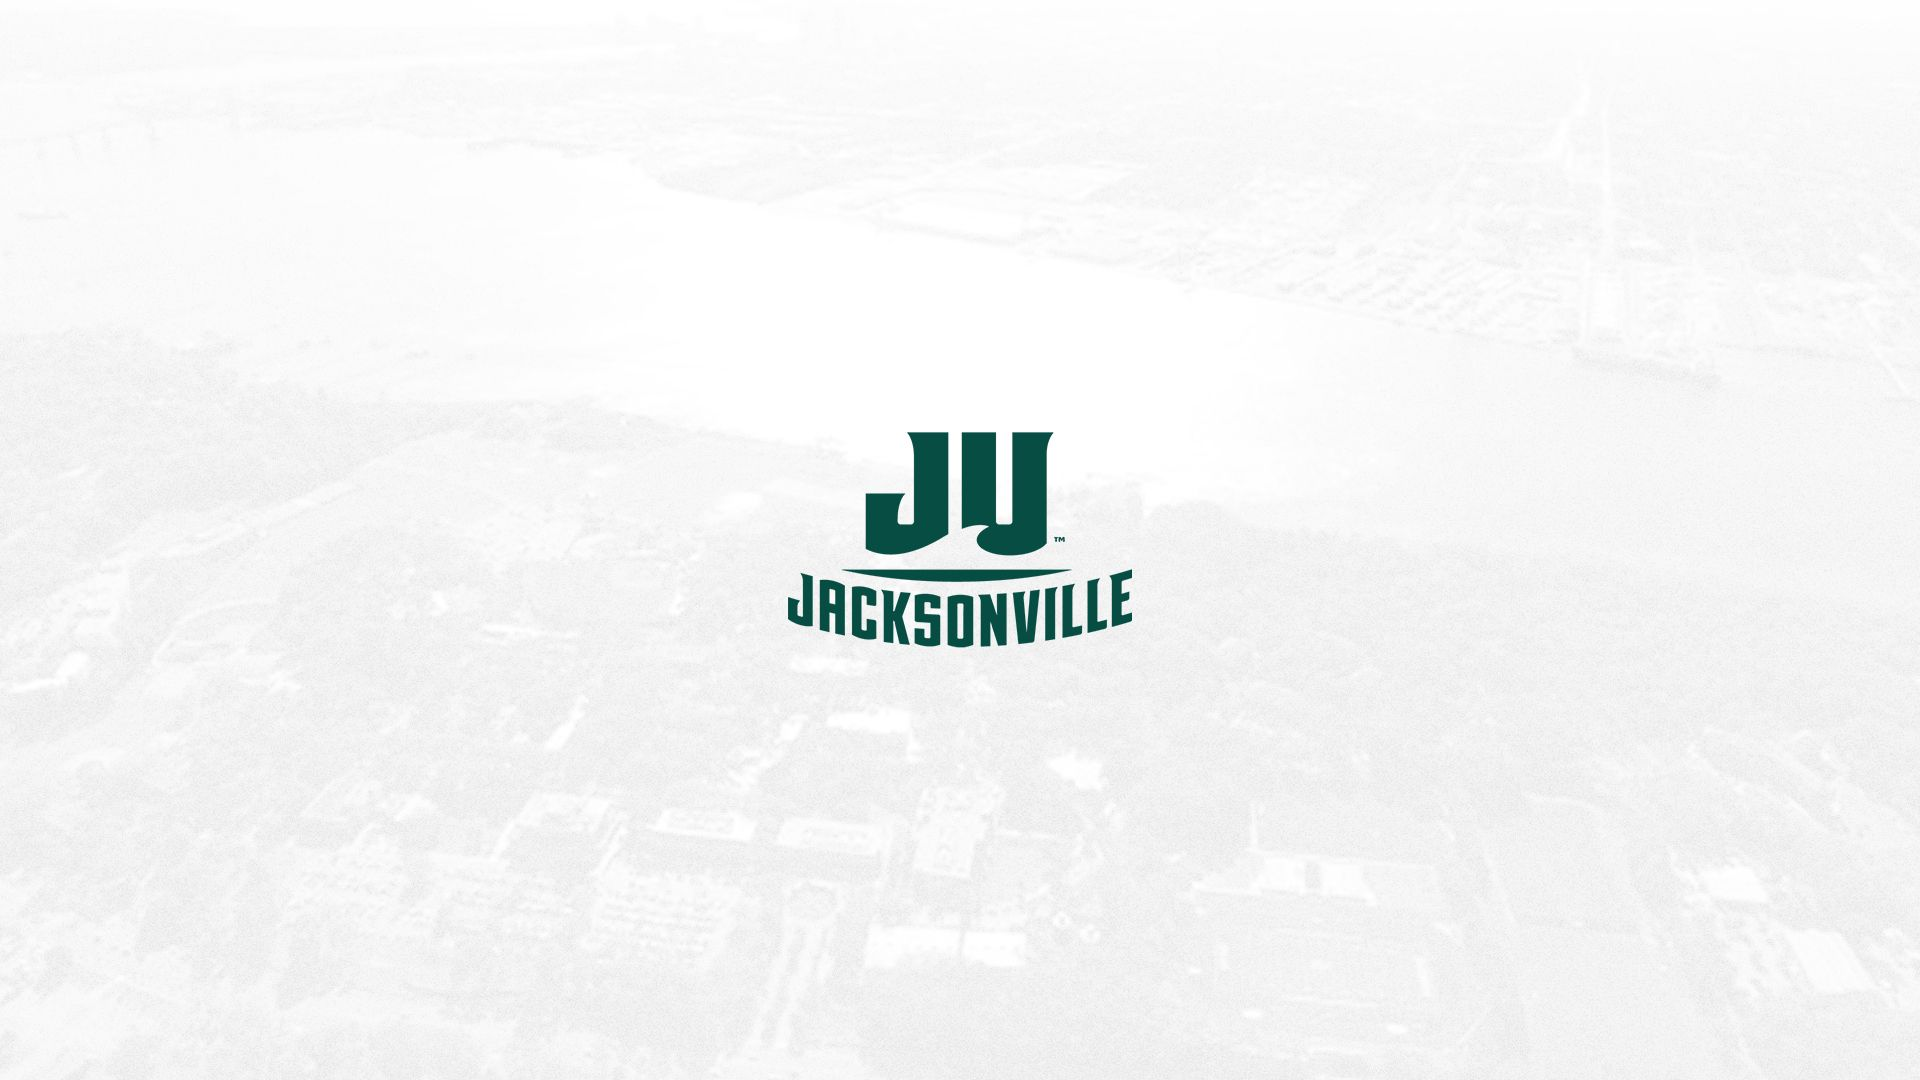 Discontinues football jacksonville college rankings